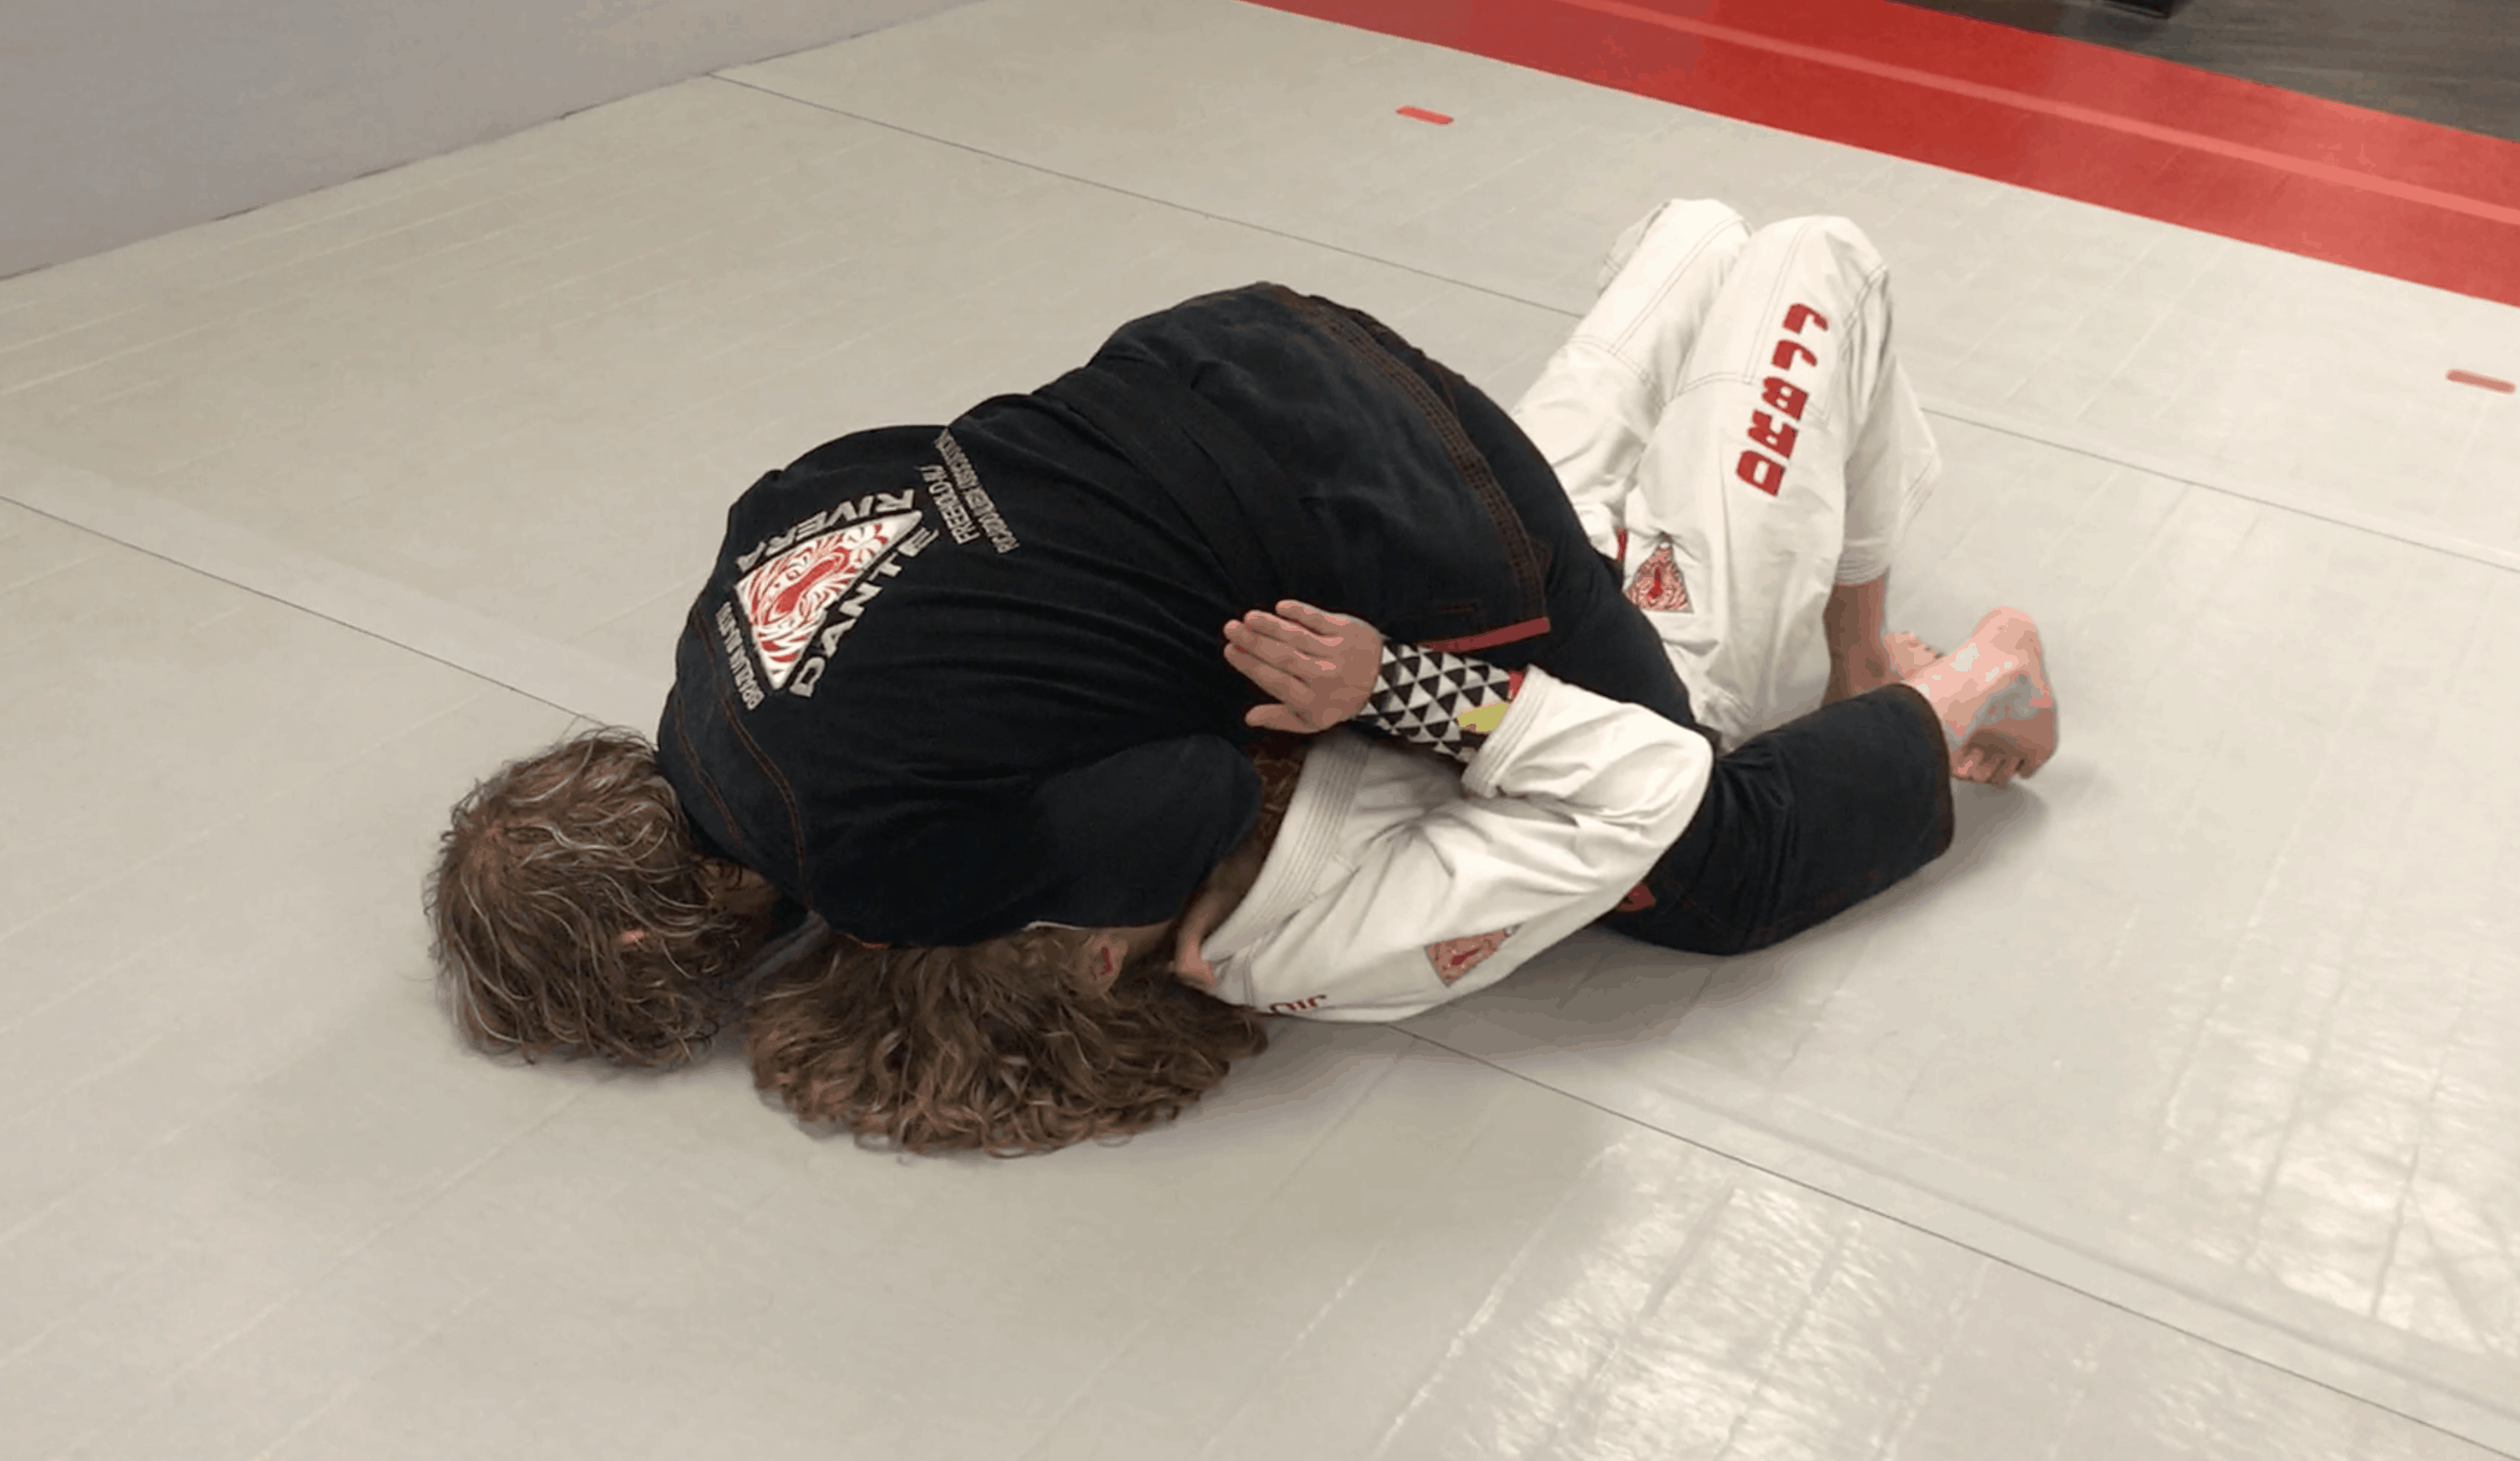 [VIDEO] Top Mount Gi Control Palm Up Grip in Collar, Arm Trap In Cross Collar Choke, Symmetrical Choke Control Finishing Details